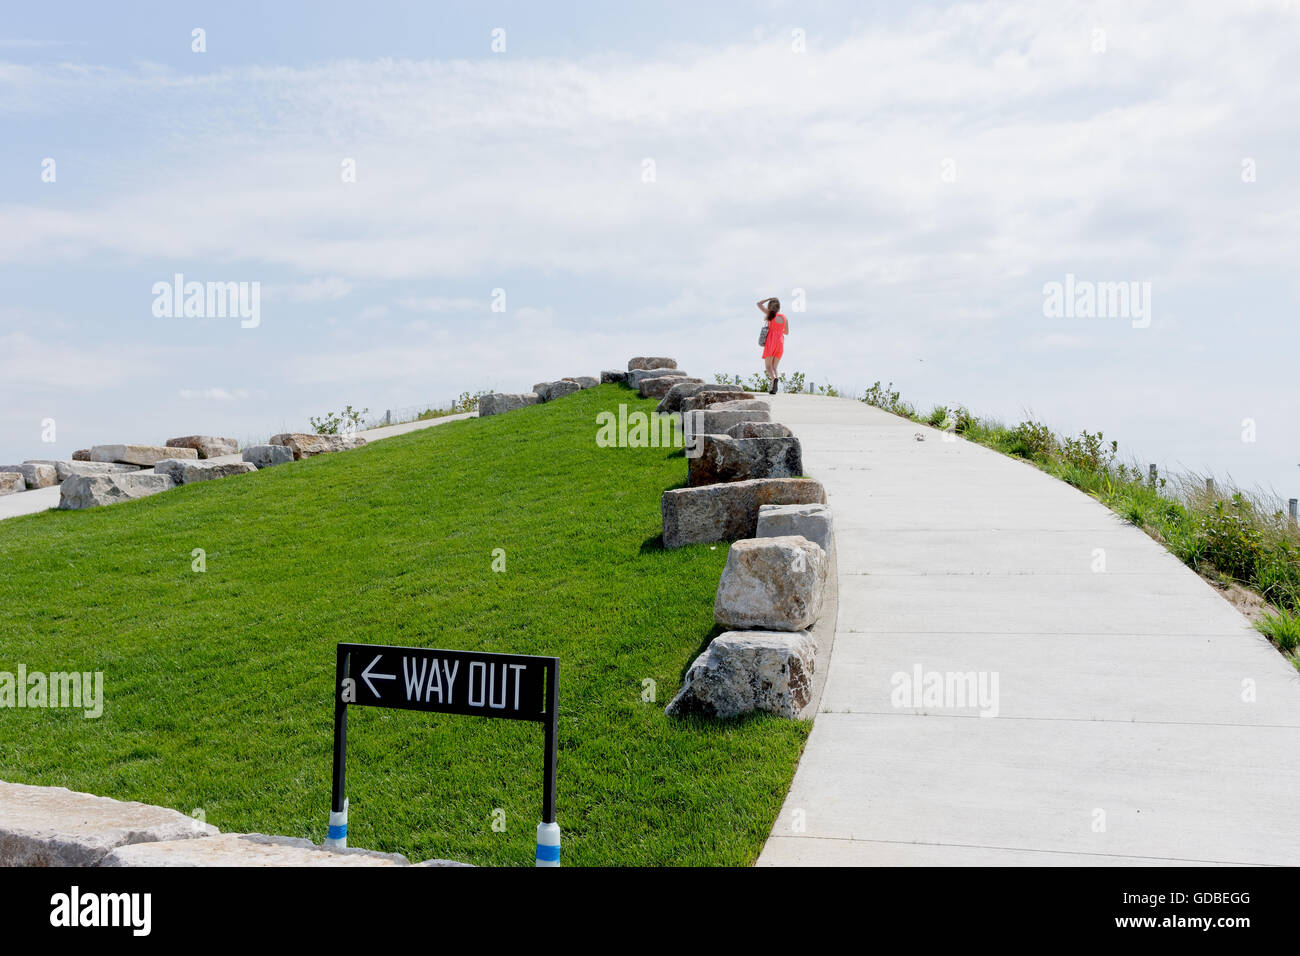 There are four man-made hills on Governors Island, designed by West 8. The summit of Outlook Hill is 70 feet above Stock Photo